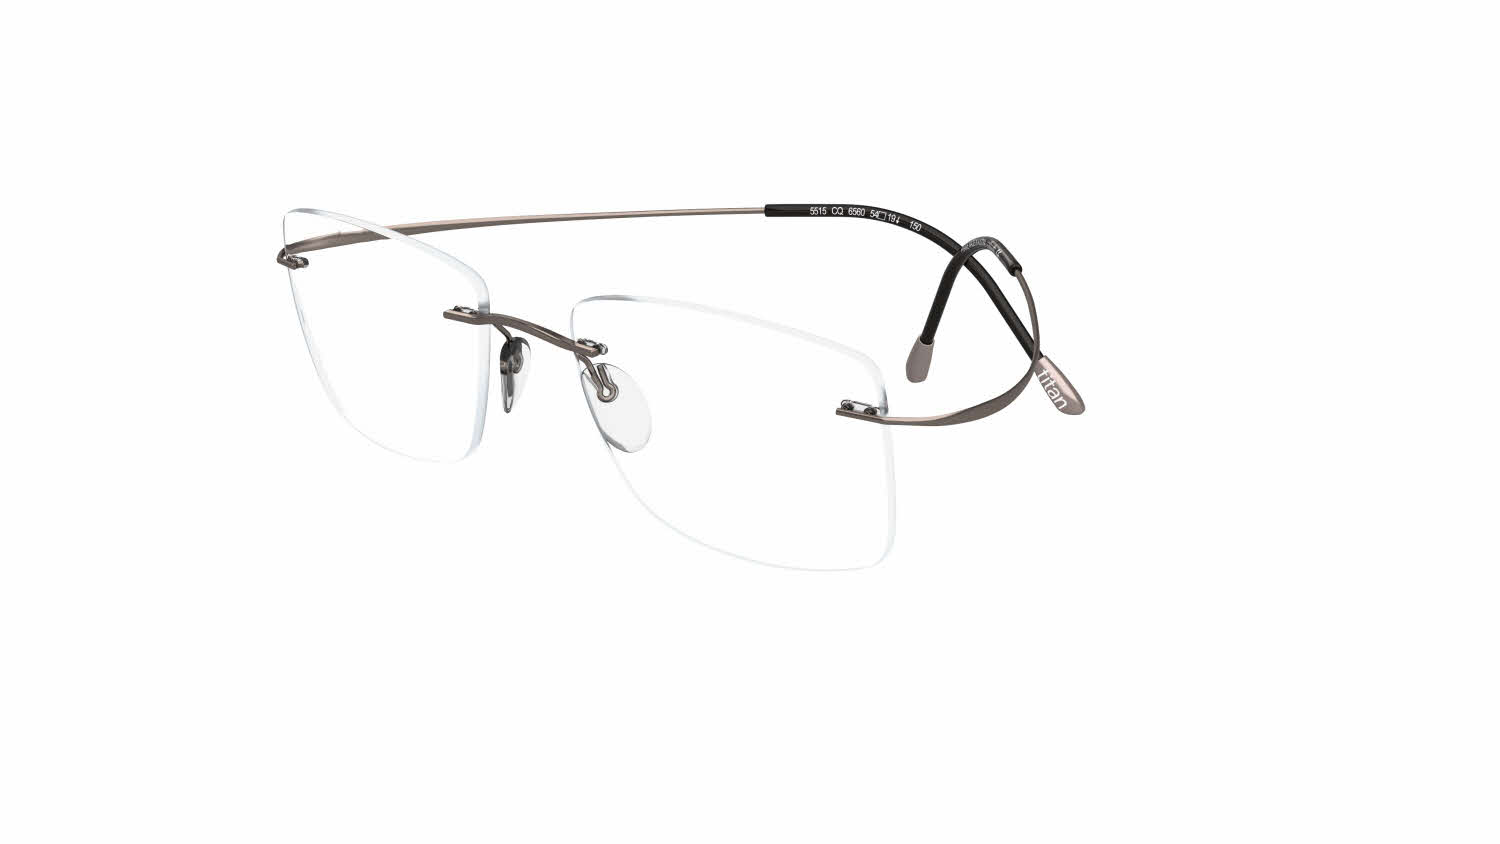 1298a23f00152 Silhouette Rimless 5515 (7799) Titan Minimal Art The Must Collection  Eyeglasses